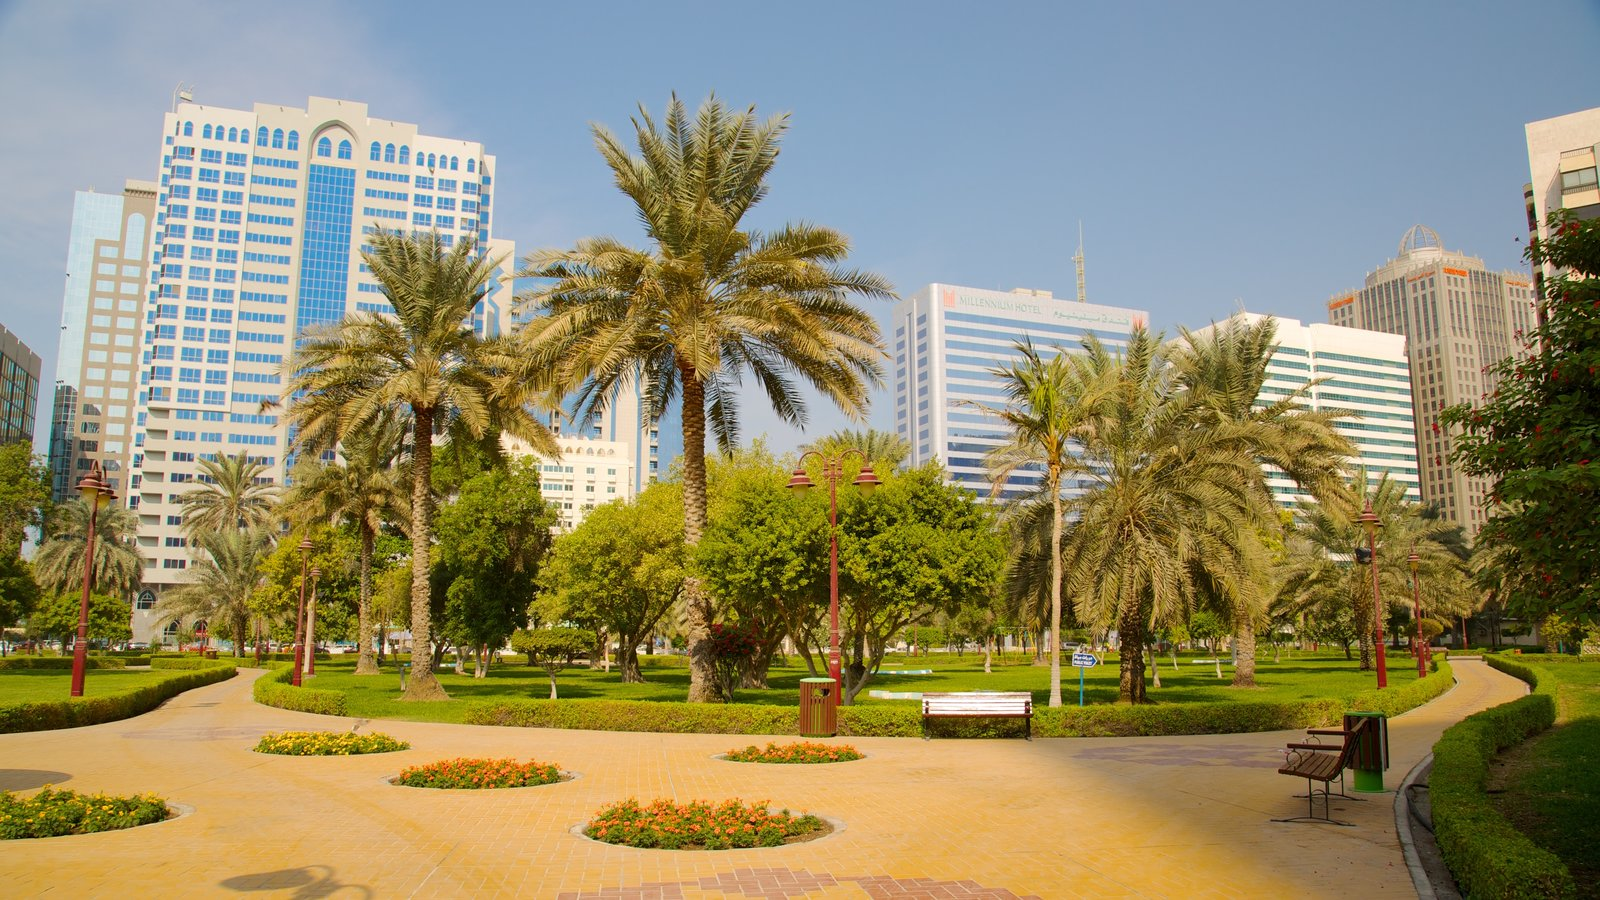 Capital Garden which includes a city and a park